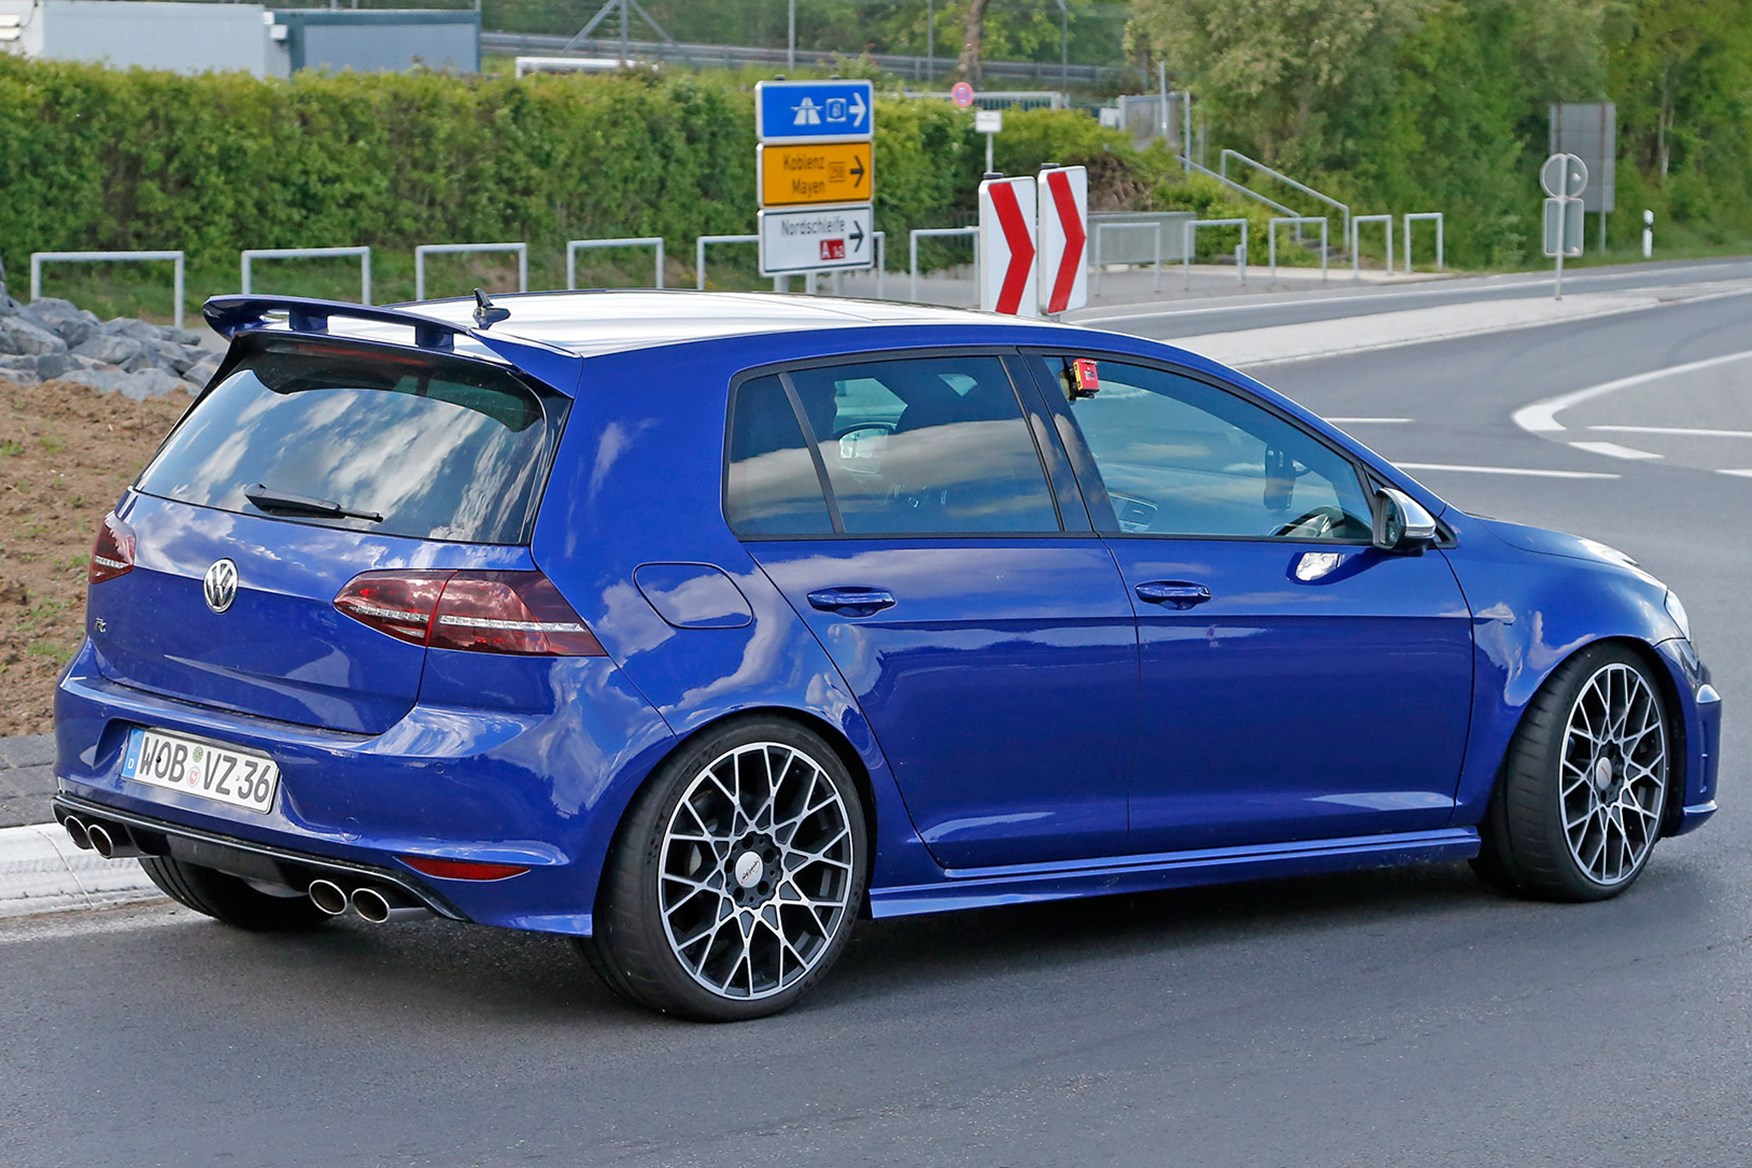 4k Wallpaper Muscle Car Vw Golf R420 Spy Photos Best Look Yet At 2016 S Super